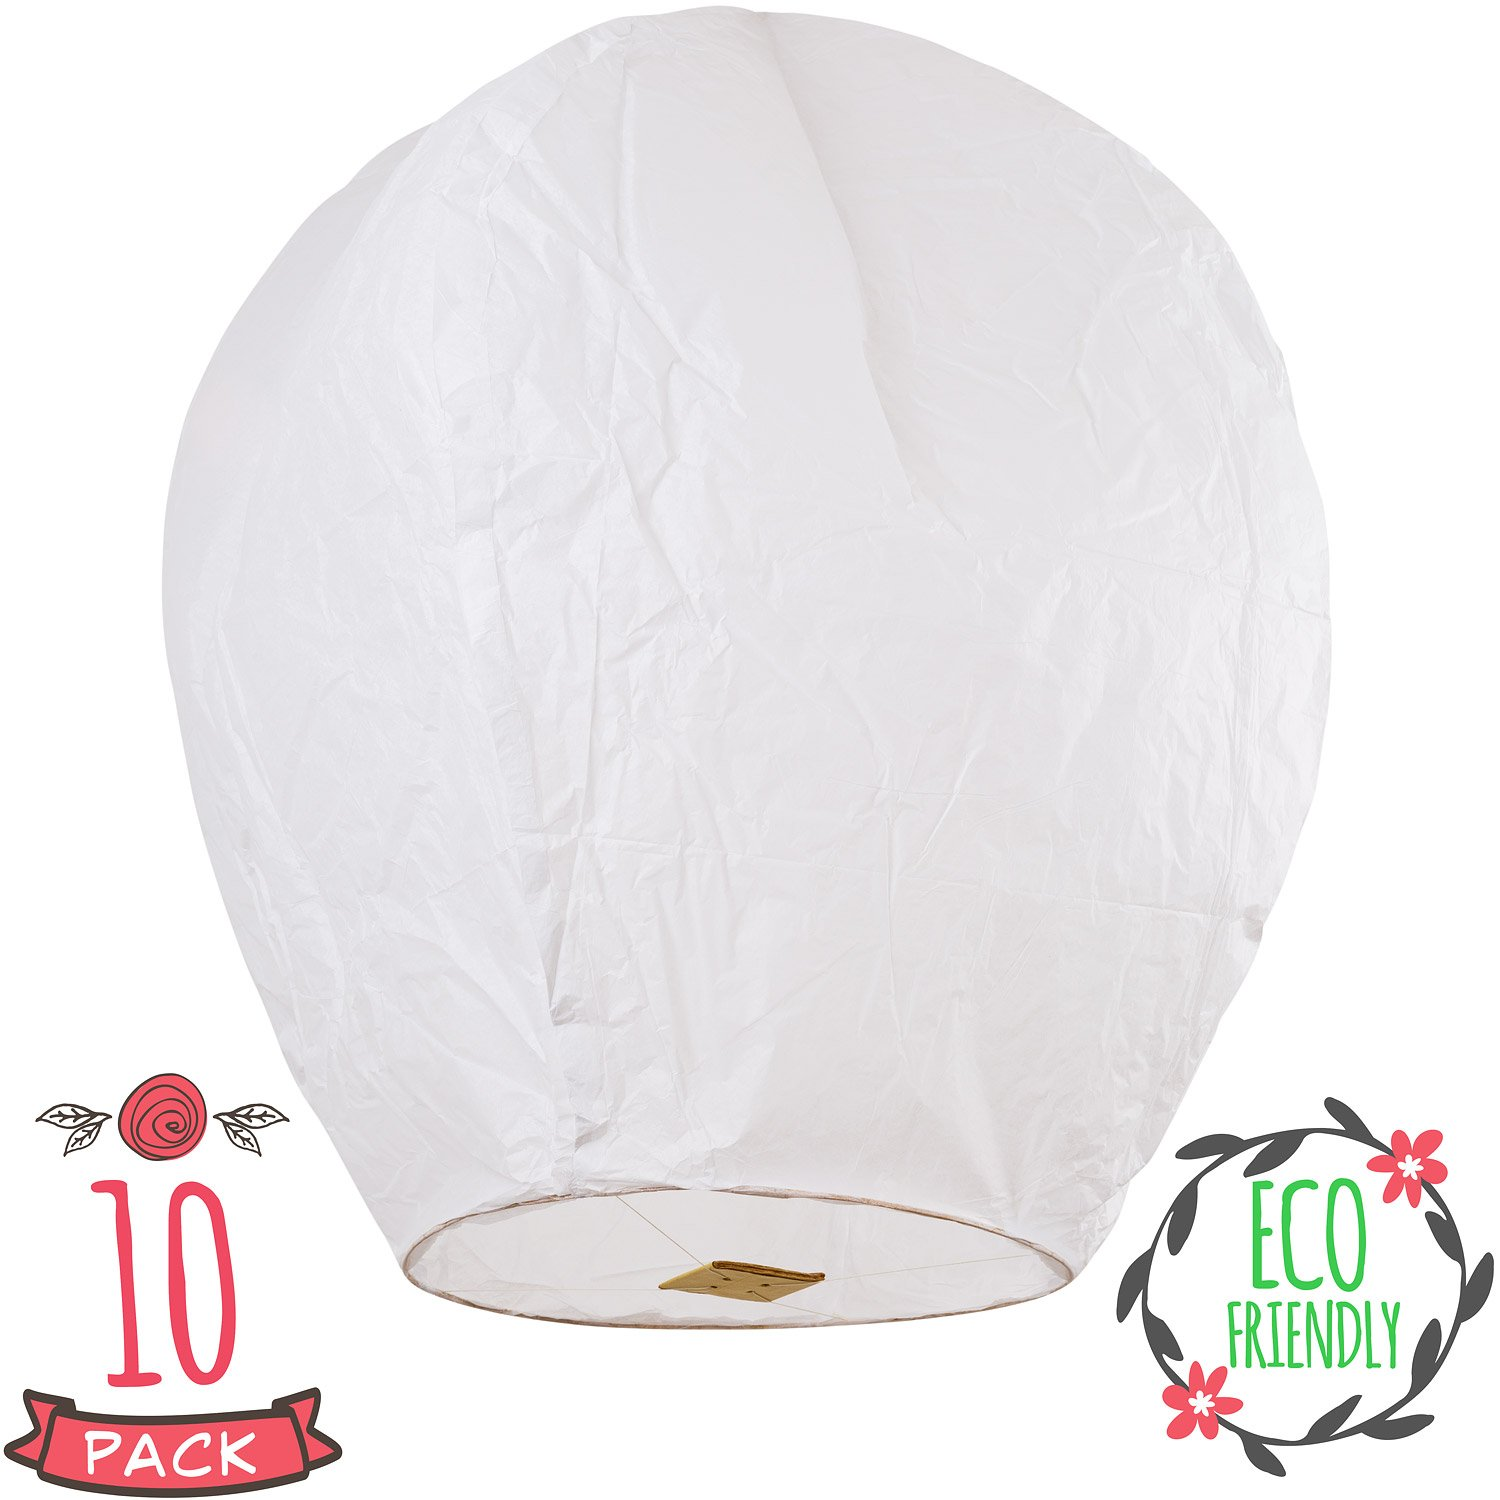 Sky High Chinese lanterns fully assembled and fully biodegradable, sky lantern by Coral Entertainments for any occasion. Birthday, wedding, anniversary, funeral, memorial, 10-pack white